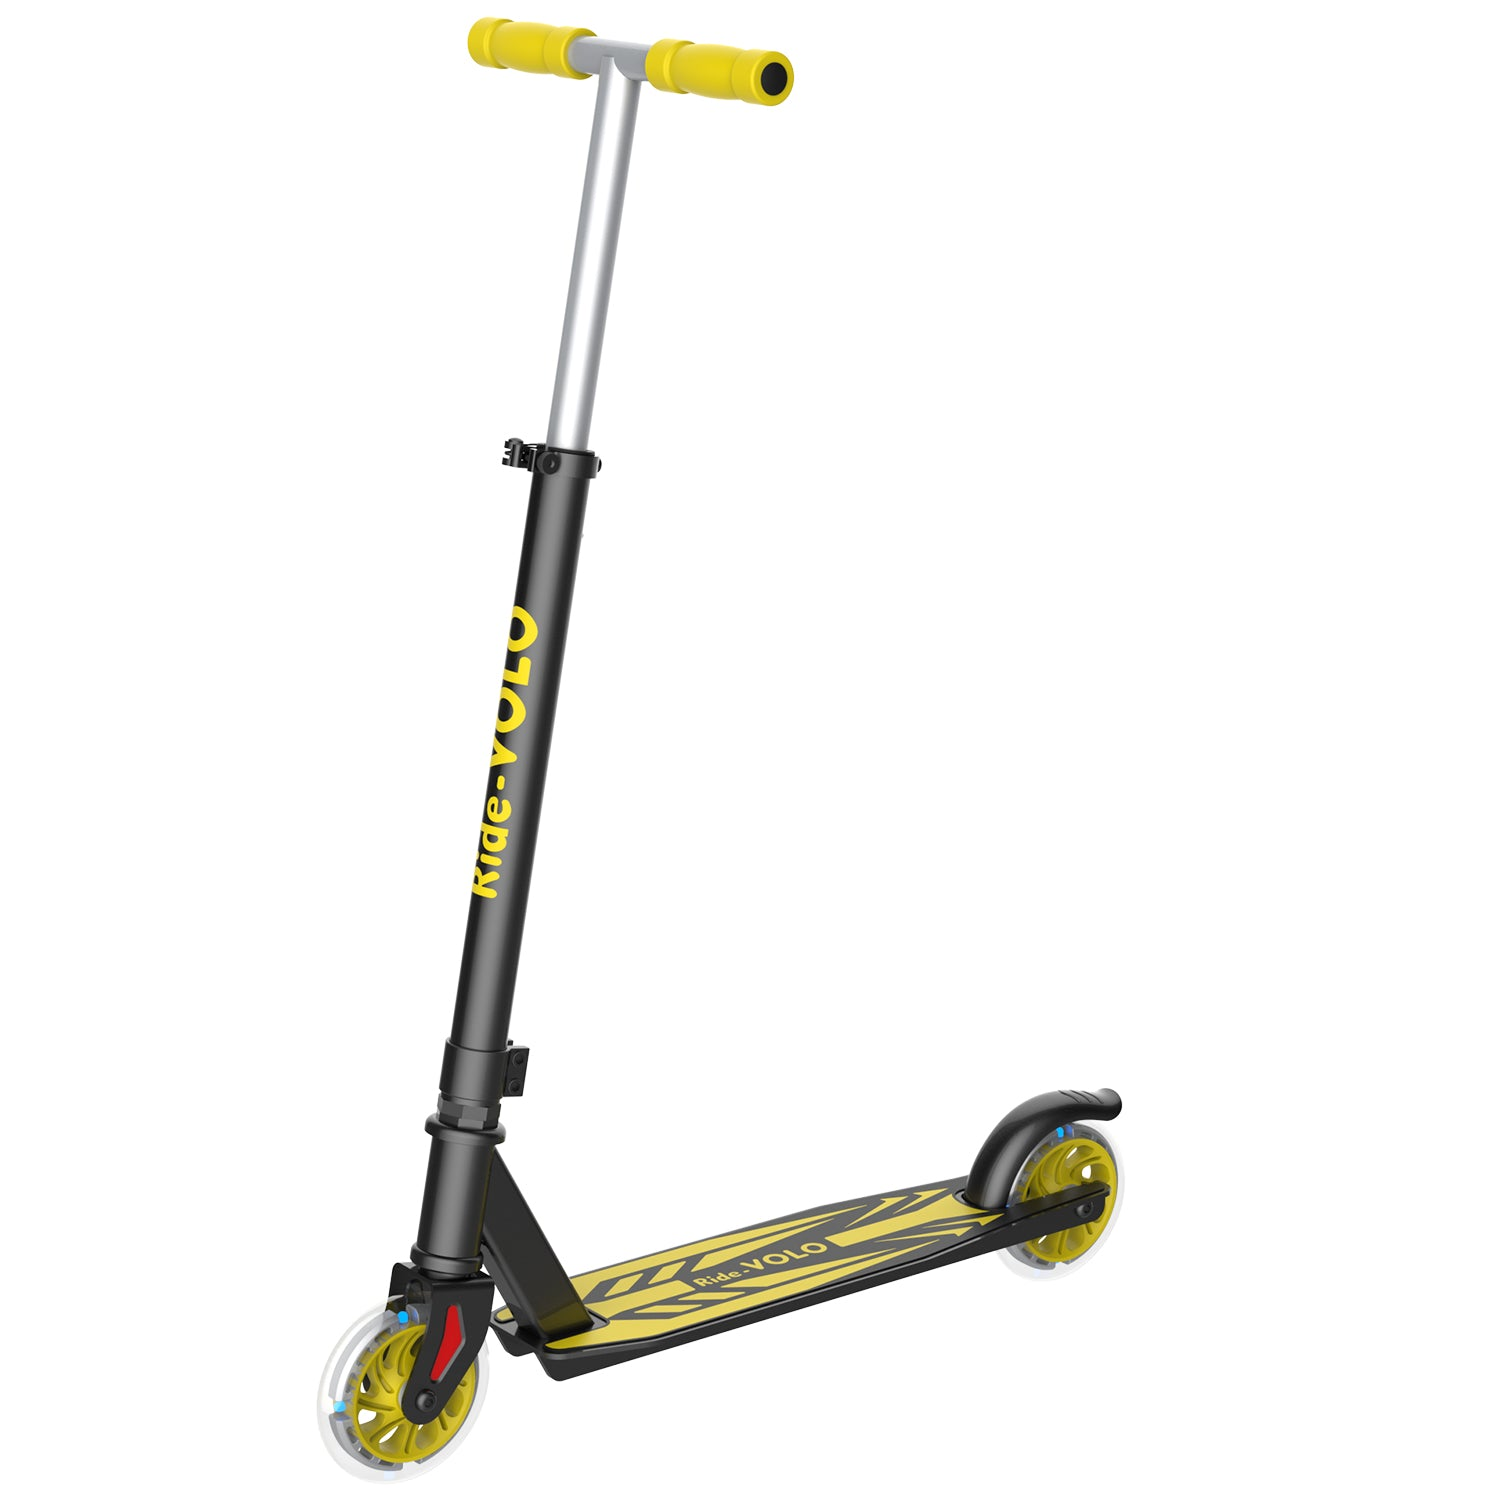 Yellow k05 scooter main image